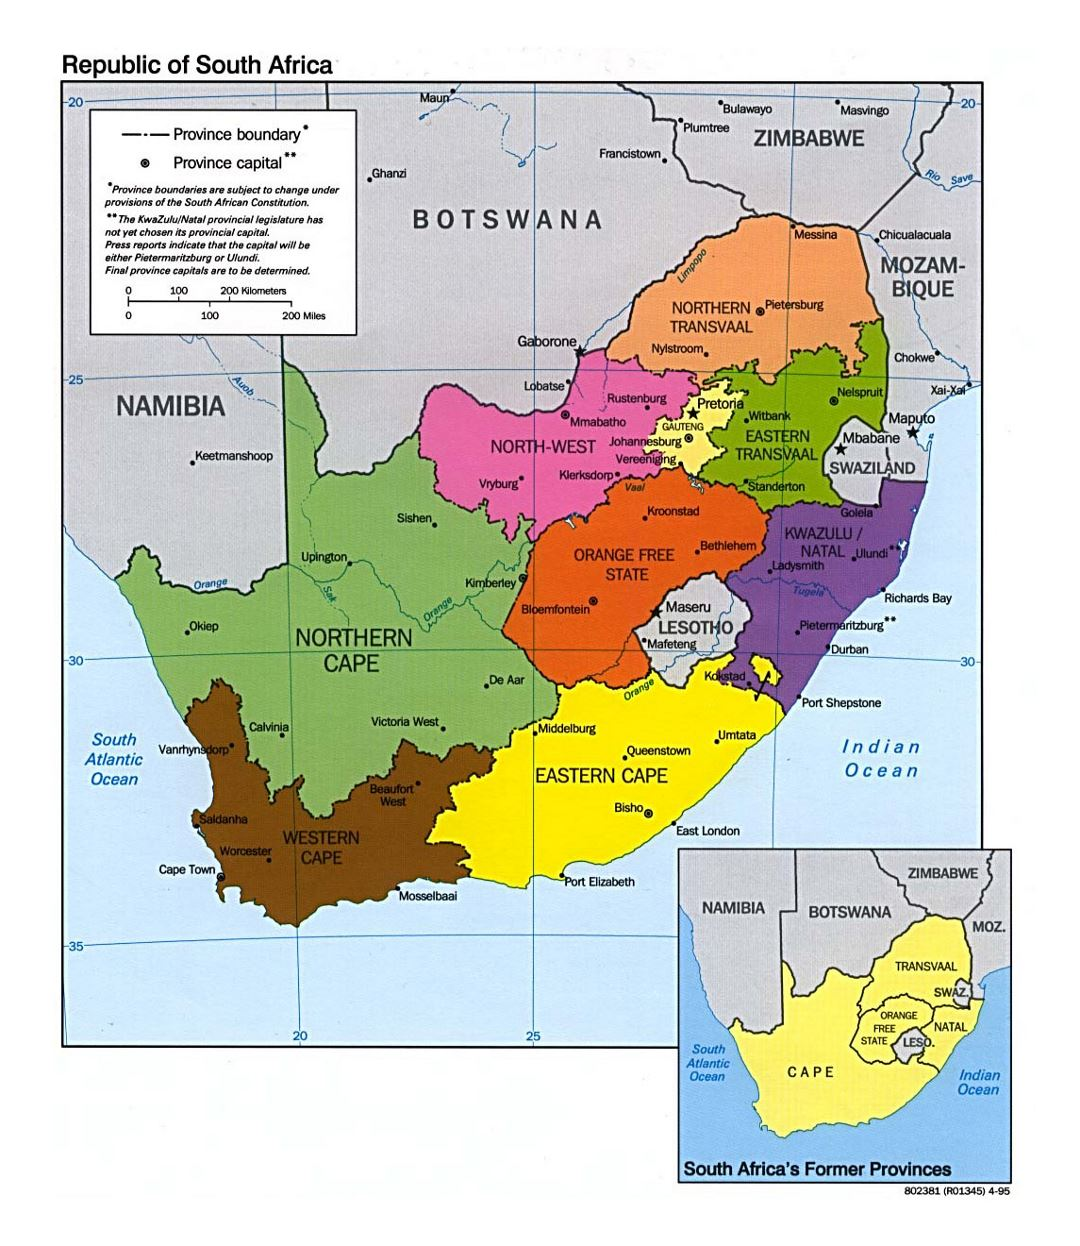 Detailed provinces map of South Africa - 1995